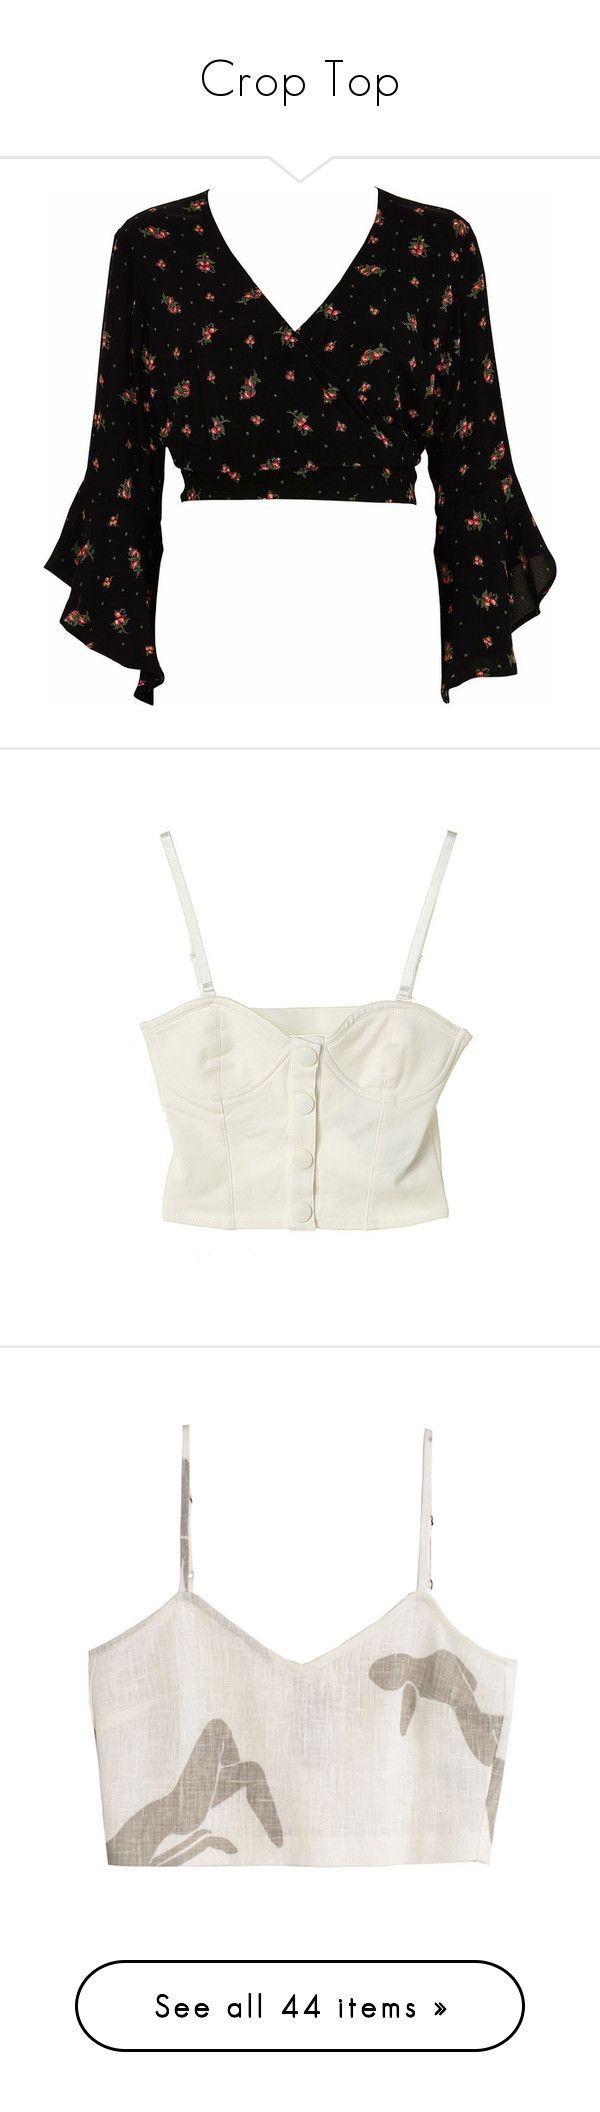 """""""Crop Top"""" by eleonore-plot ❤ liked on Polyvore featuring tops, shirts, crop tops, cropped, black, sale, women, tie neck tie, shirt crop top and 3 4 sleeve crop top"""